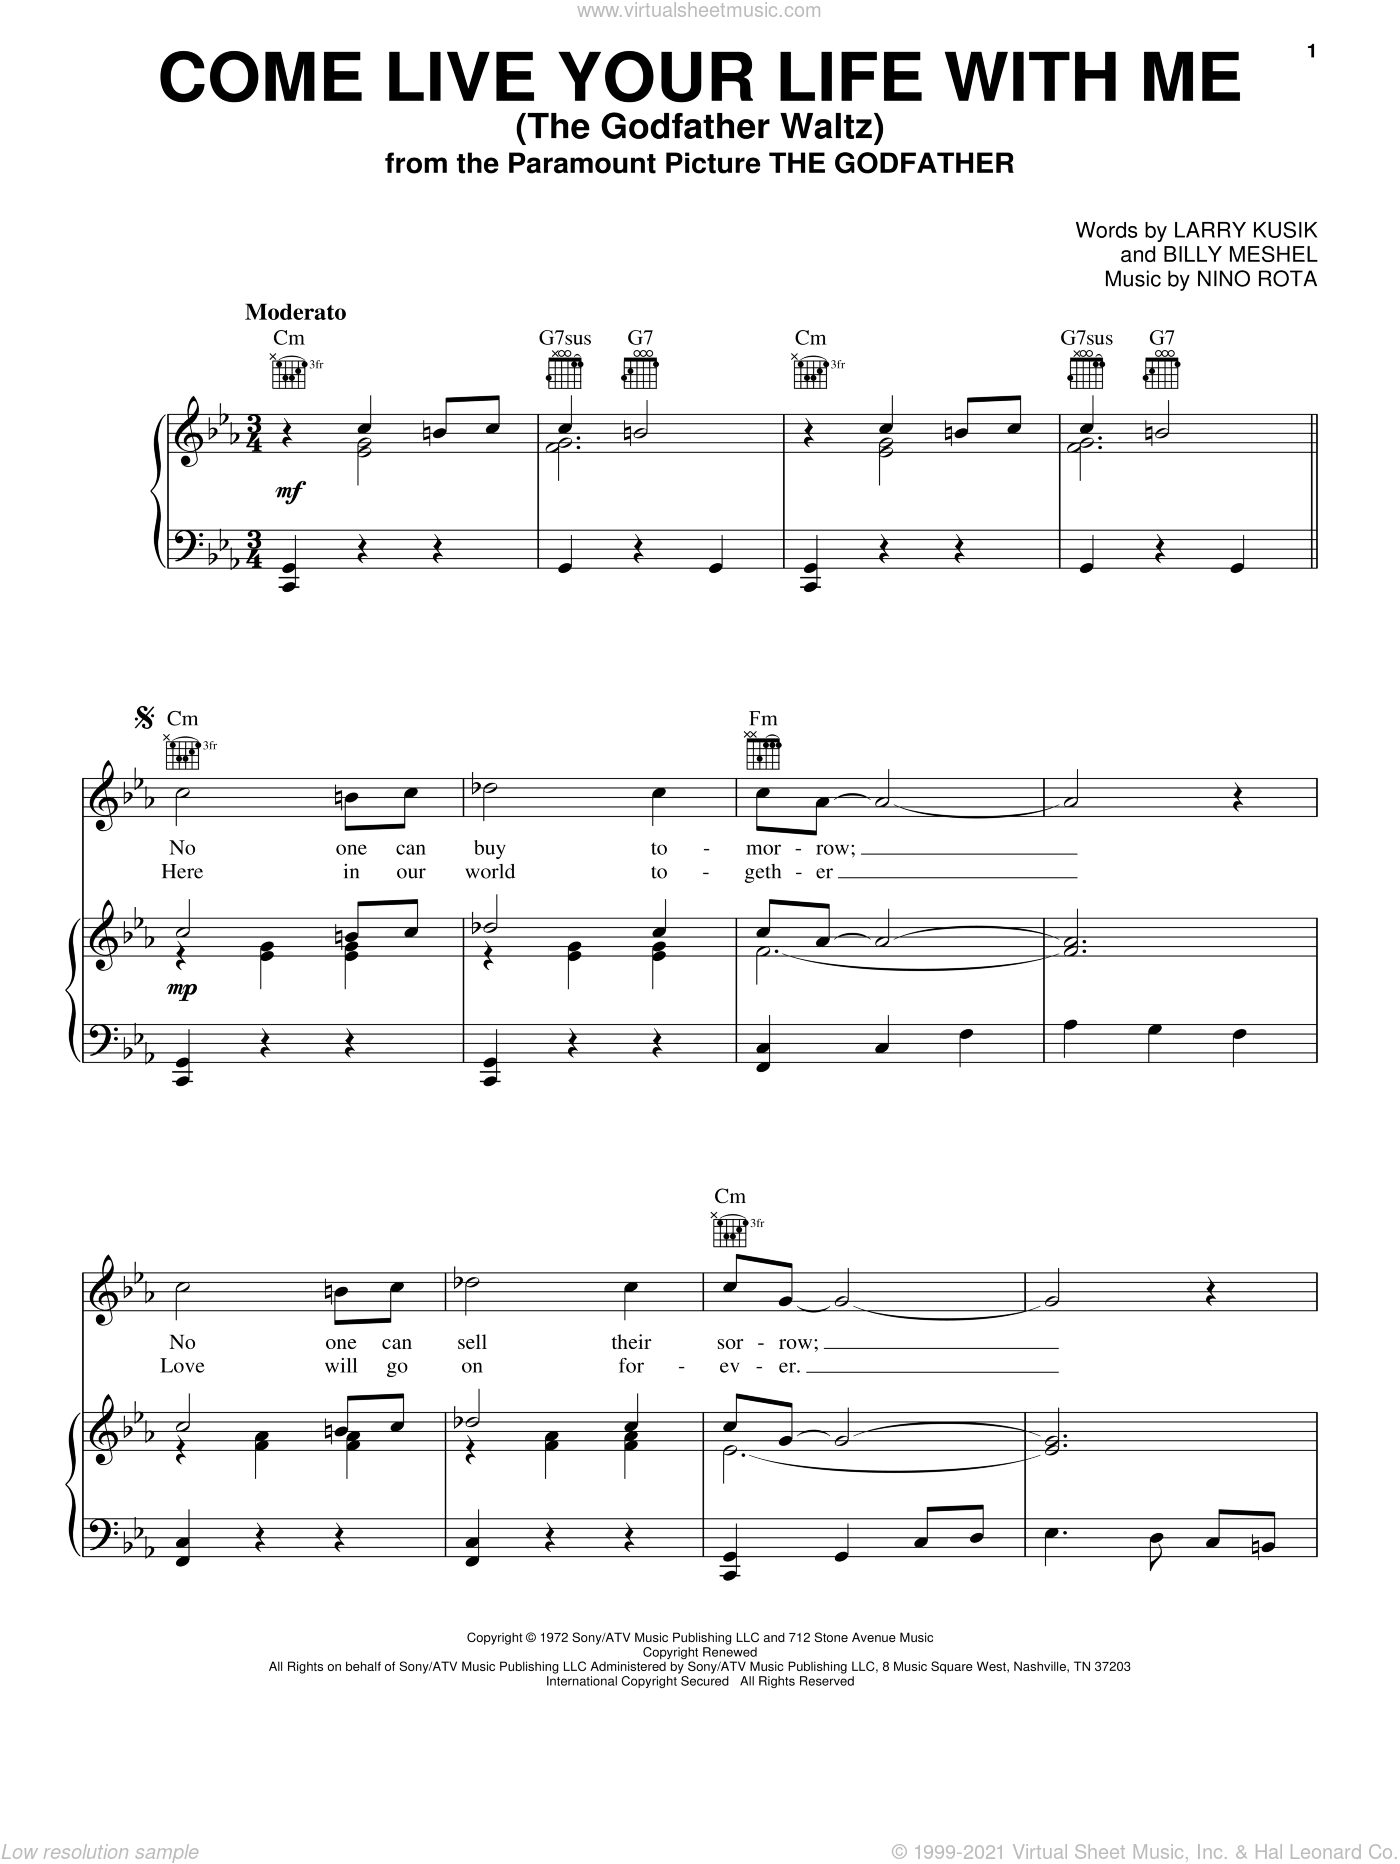 Come Live Your Life With Me (The Godfather Waltz) sheet music for voice, piano or guitar by Larry Kusik and Nino Rota. Score Image Preview.